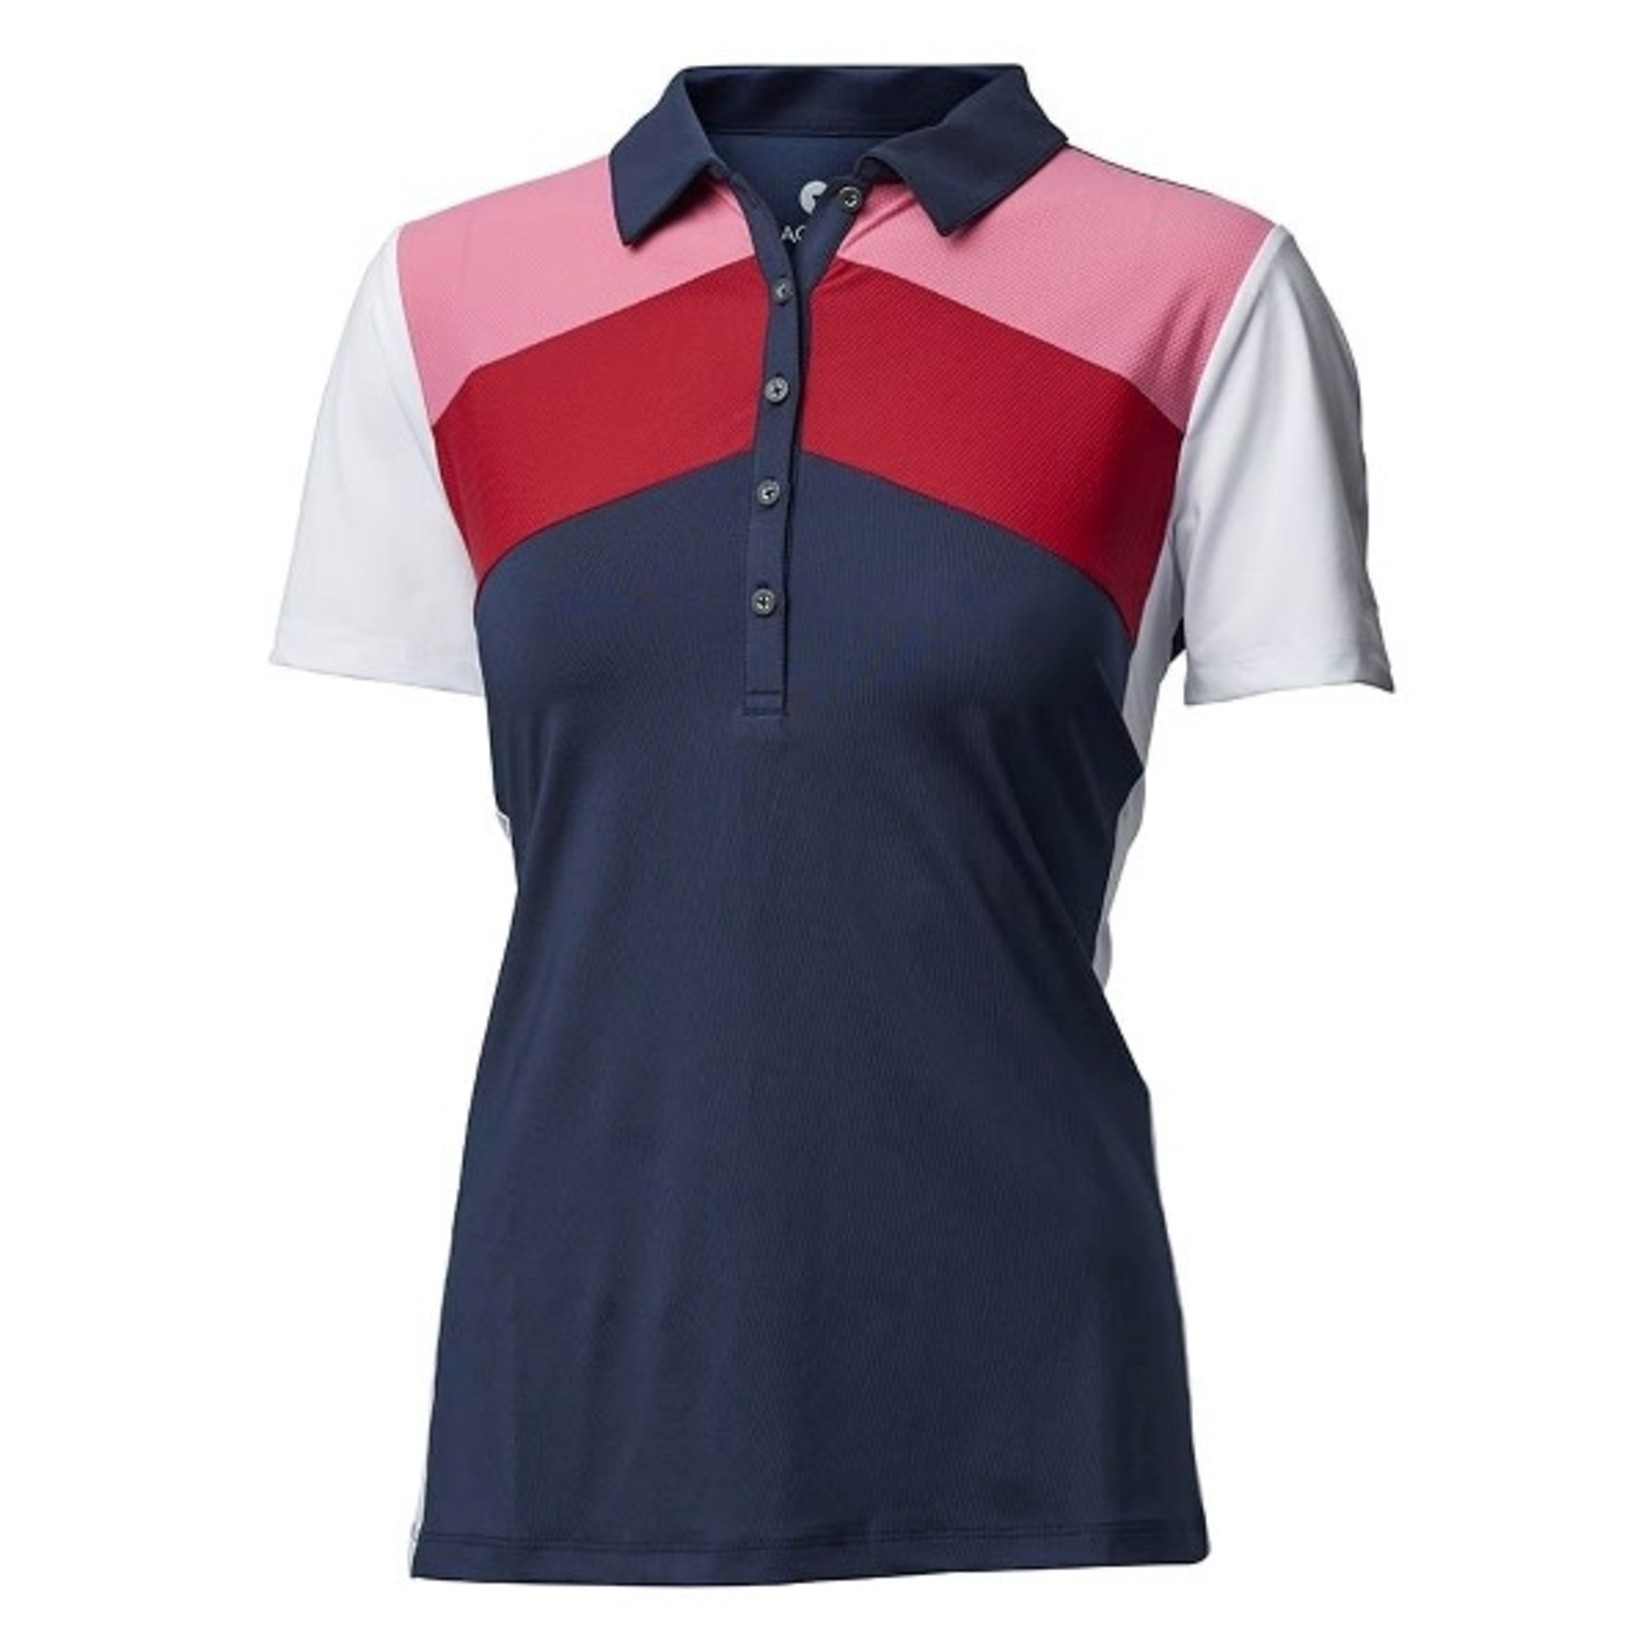 Backtee Backtee Ladies Sports Qd Uv Polo blauw/roze/rood/wit 2XL